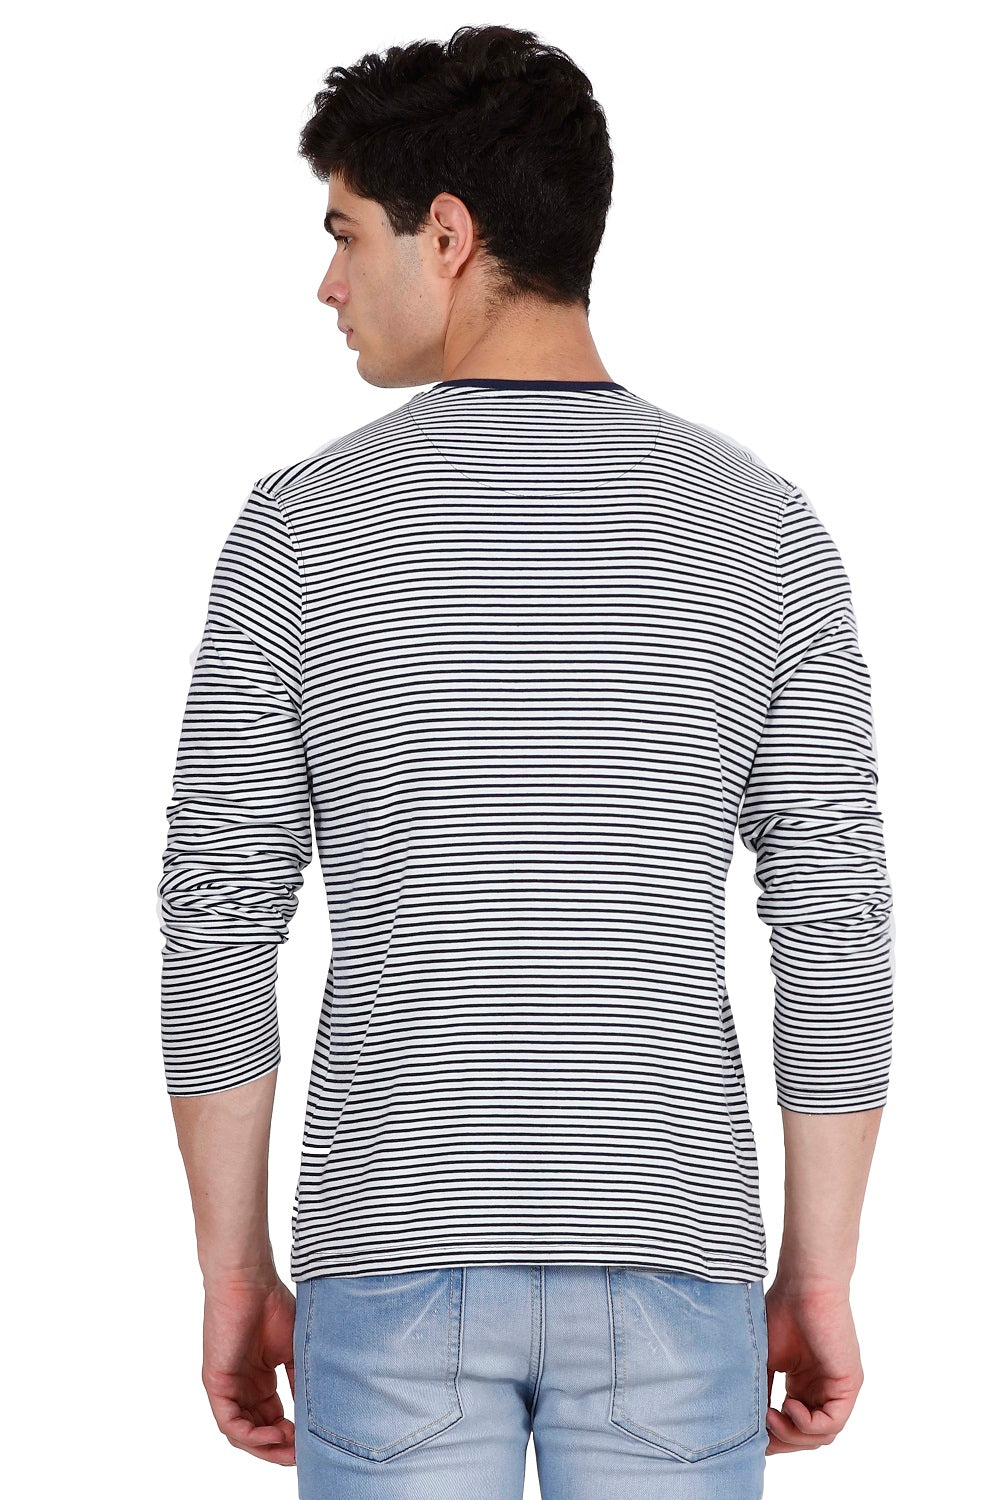 Hunt and Howe Men's Regular Fit Henley T-Shirt